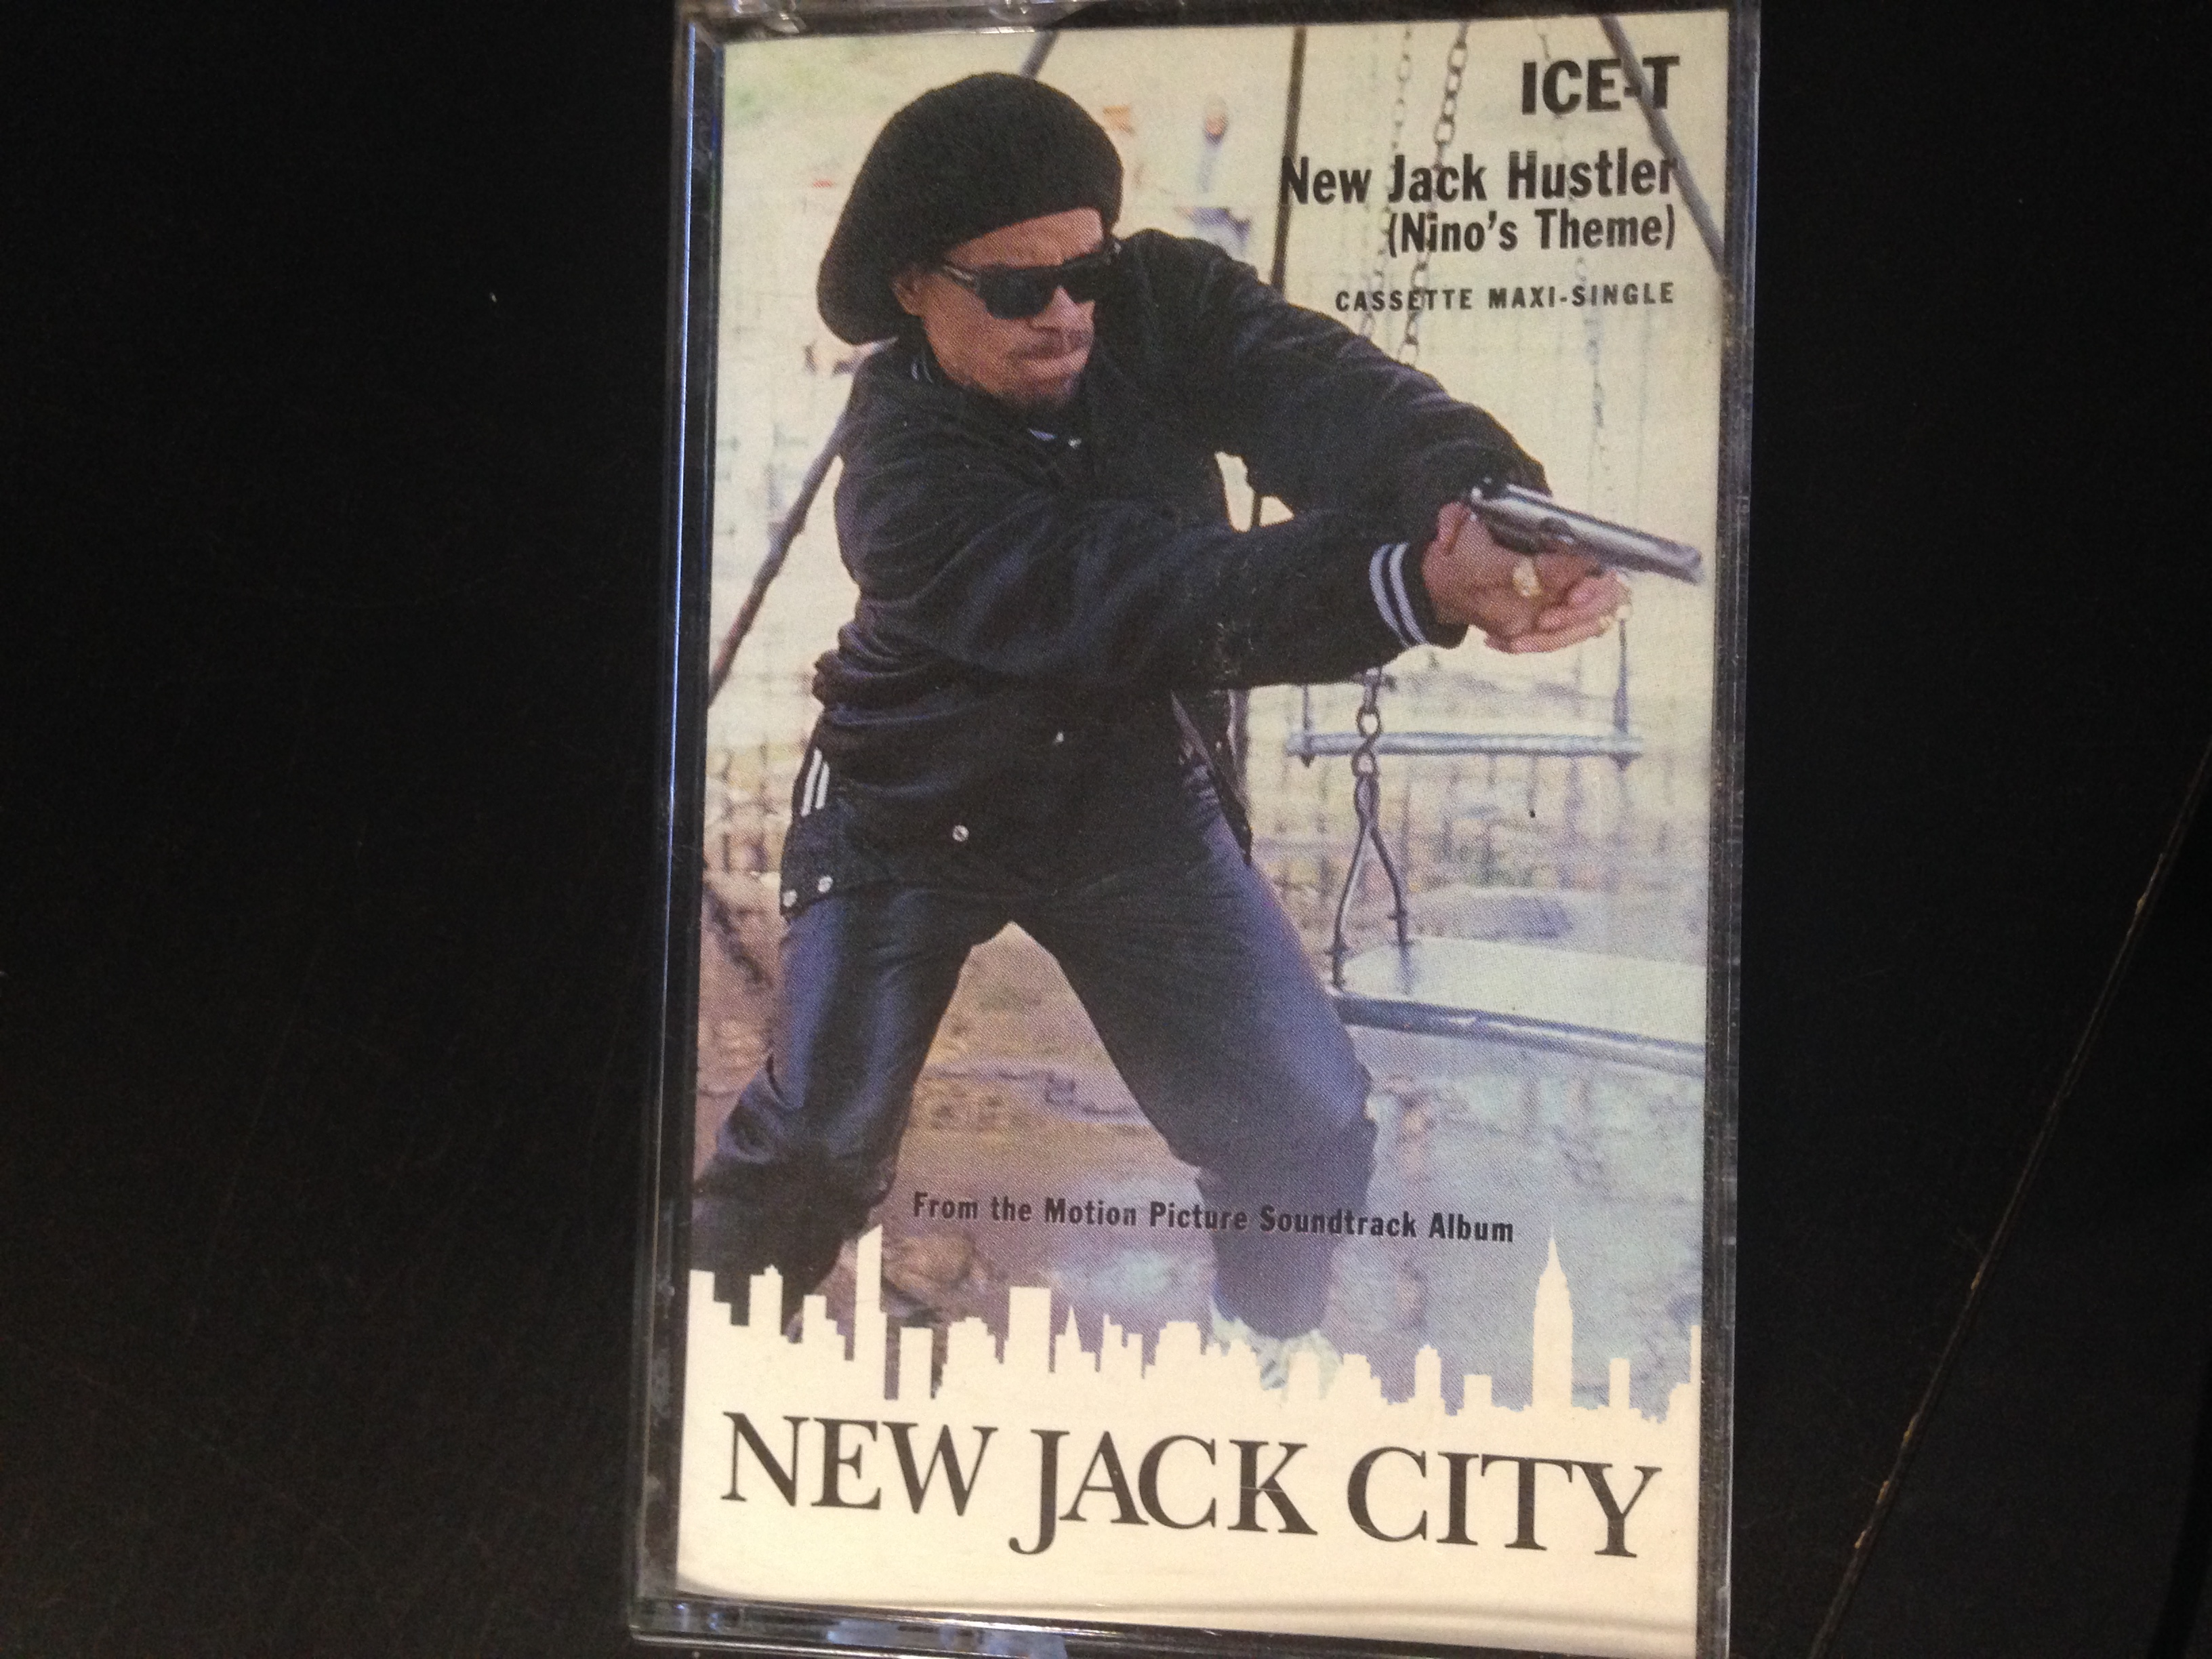 ice-t-new-jack-hustler